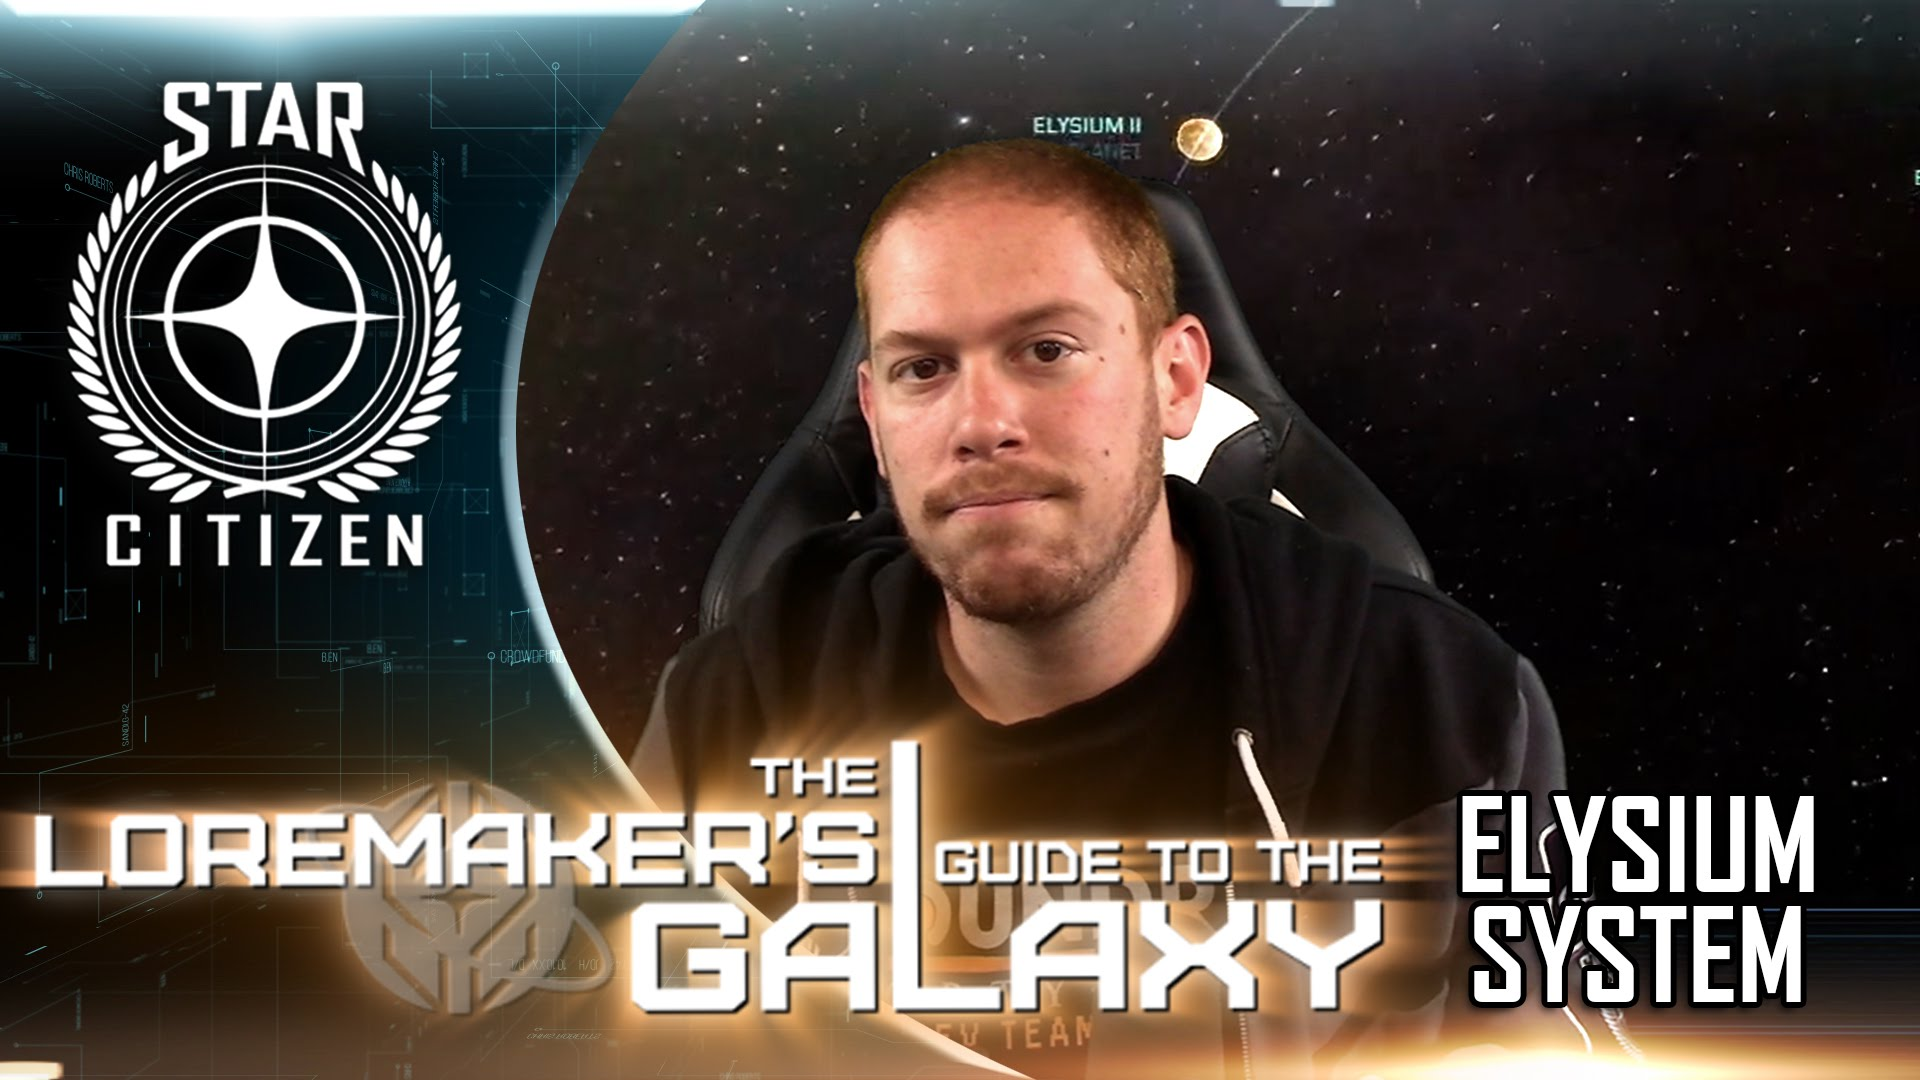 Star Citizen: Loremaker's Guide to the Galaxy - Elysium System